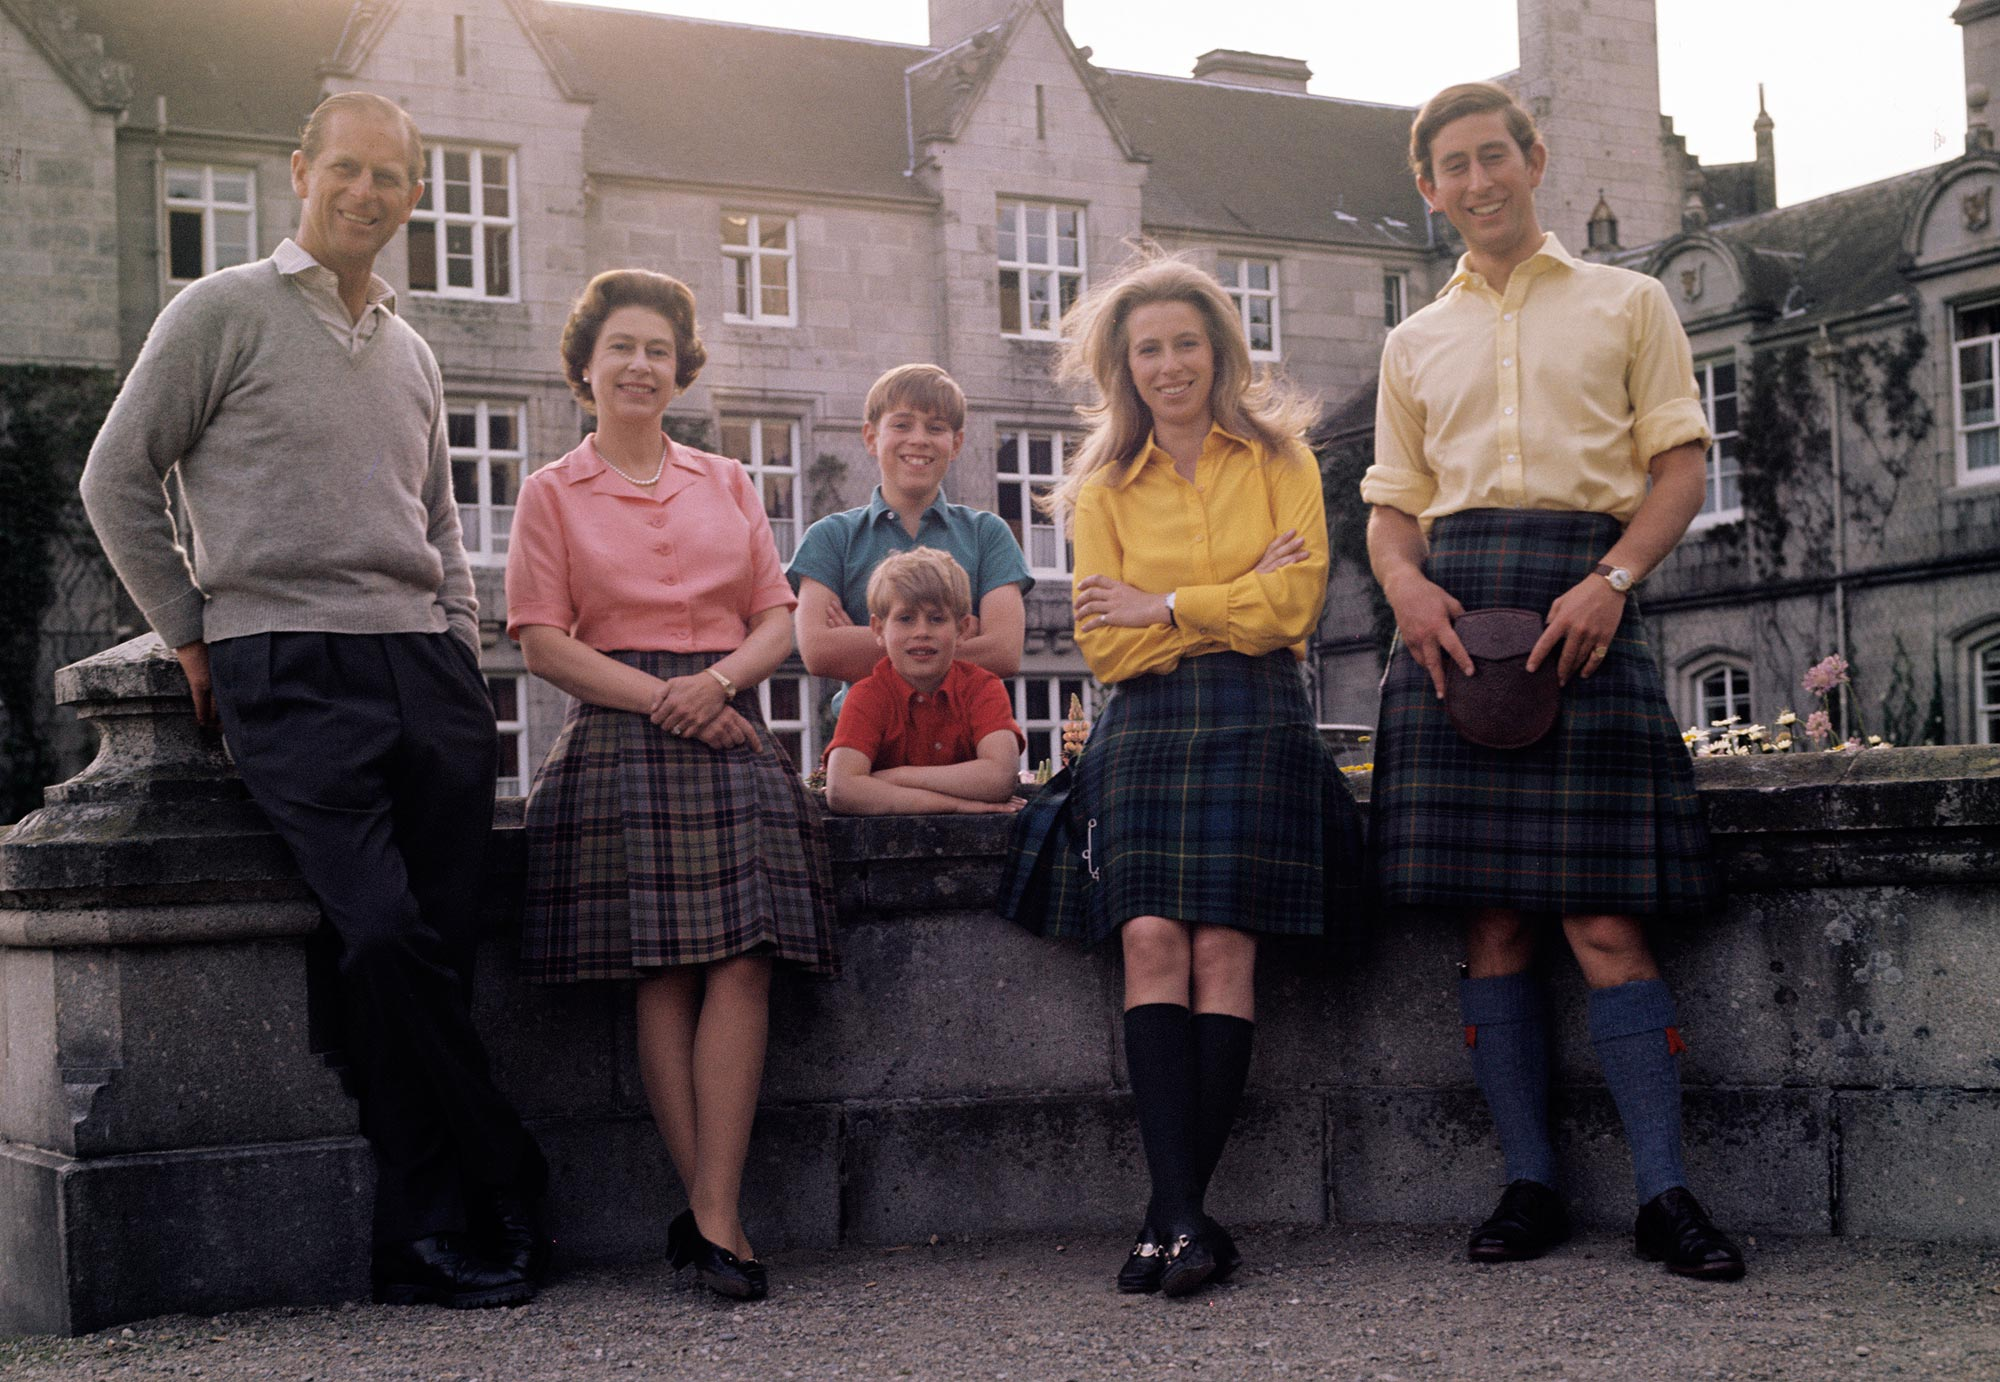 Royal Family Group at Balmoral